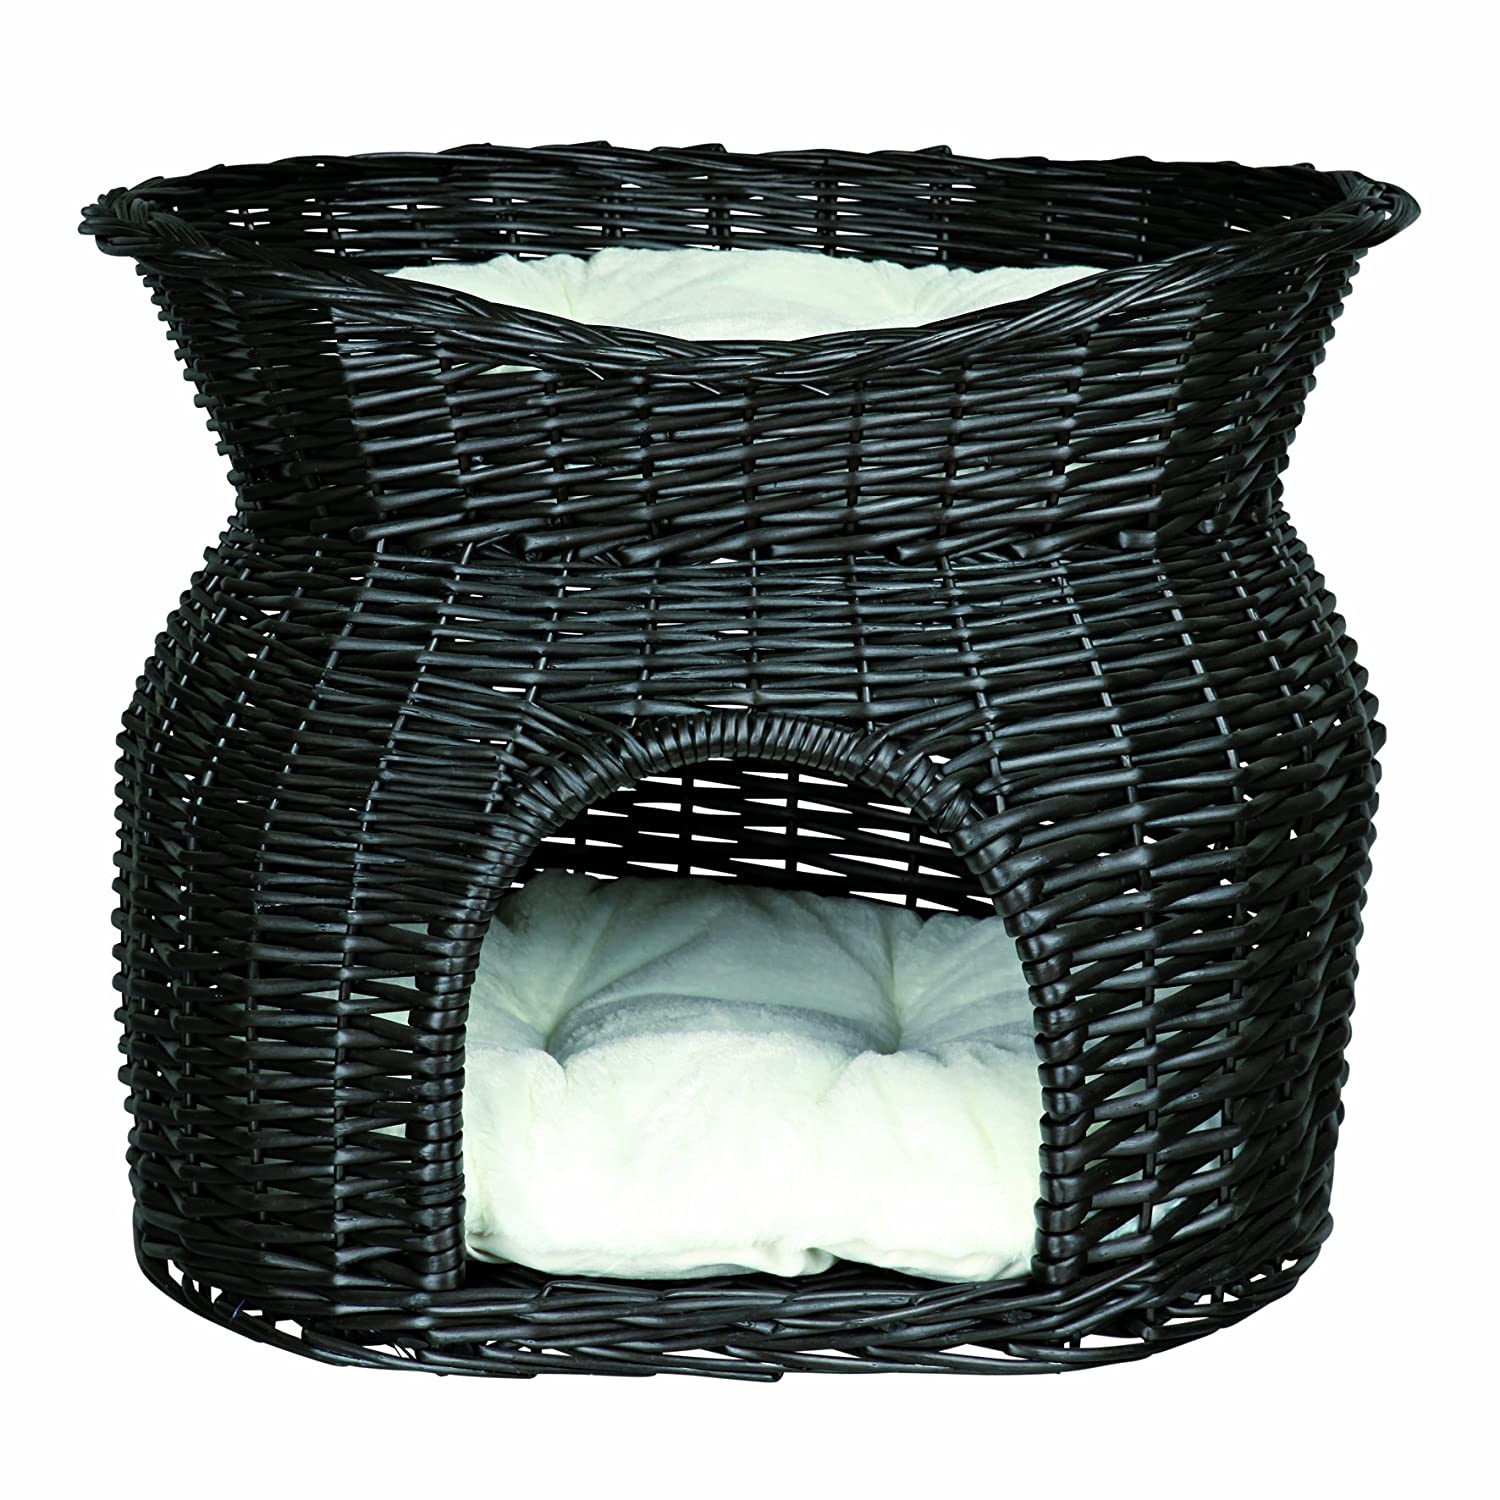 Black Wicker Cave with Bed  - 54 × 43 × 37 cm